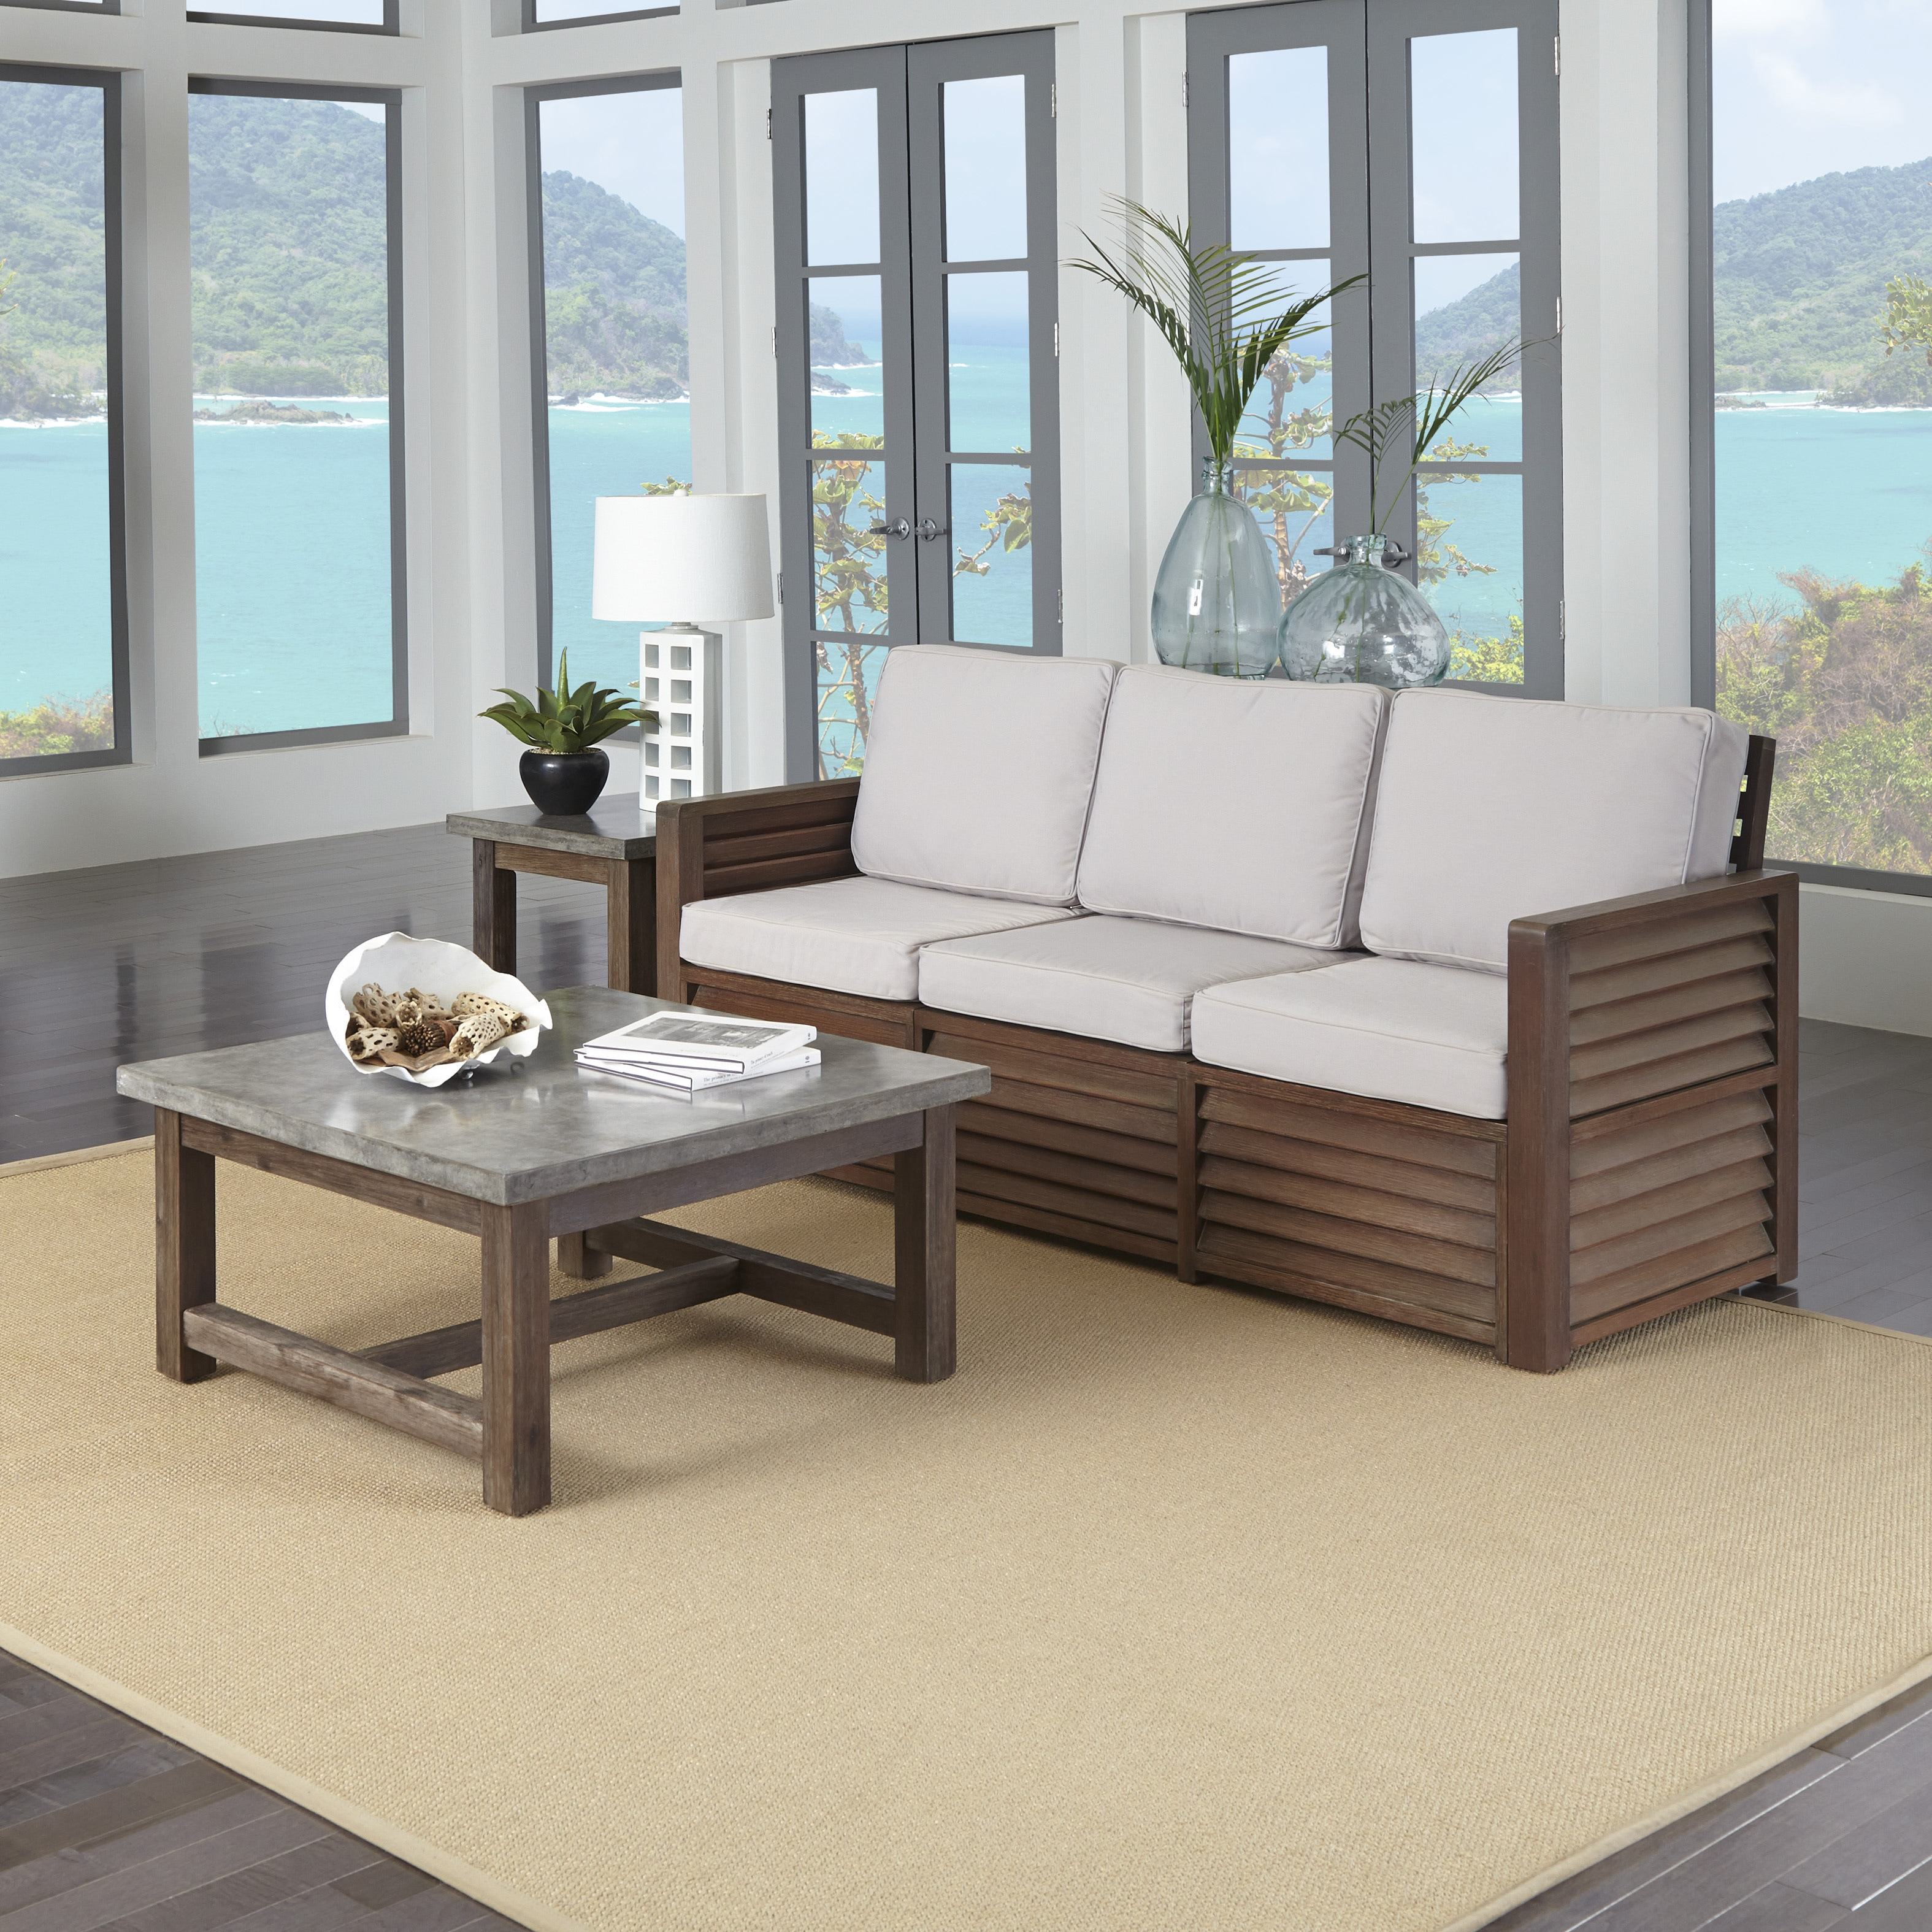 Home Styles Barnside 3-Seat Sofa, End Table and Coffee Table